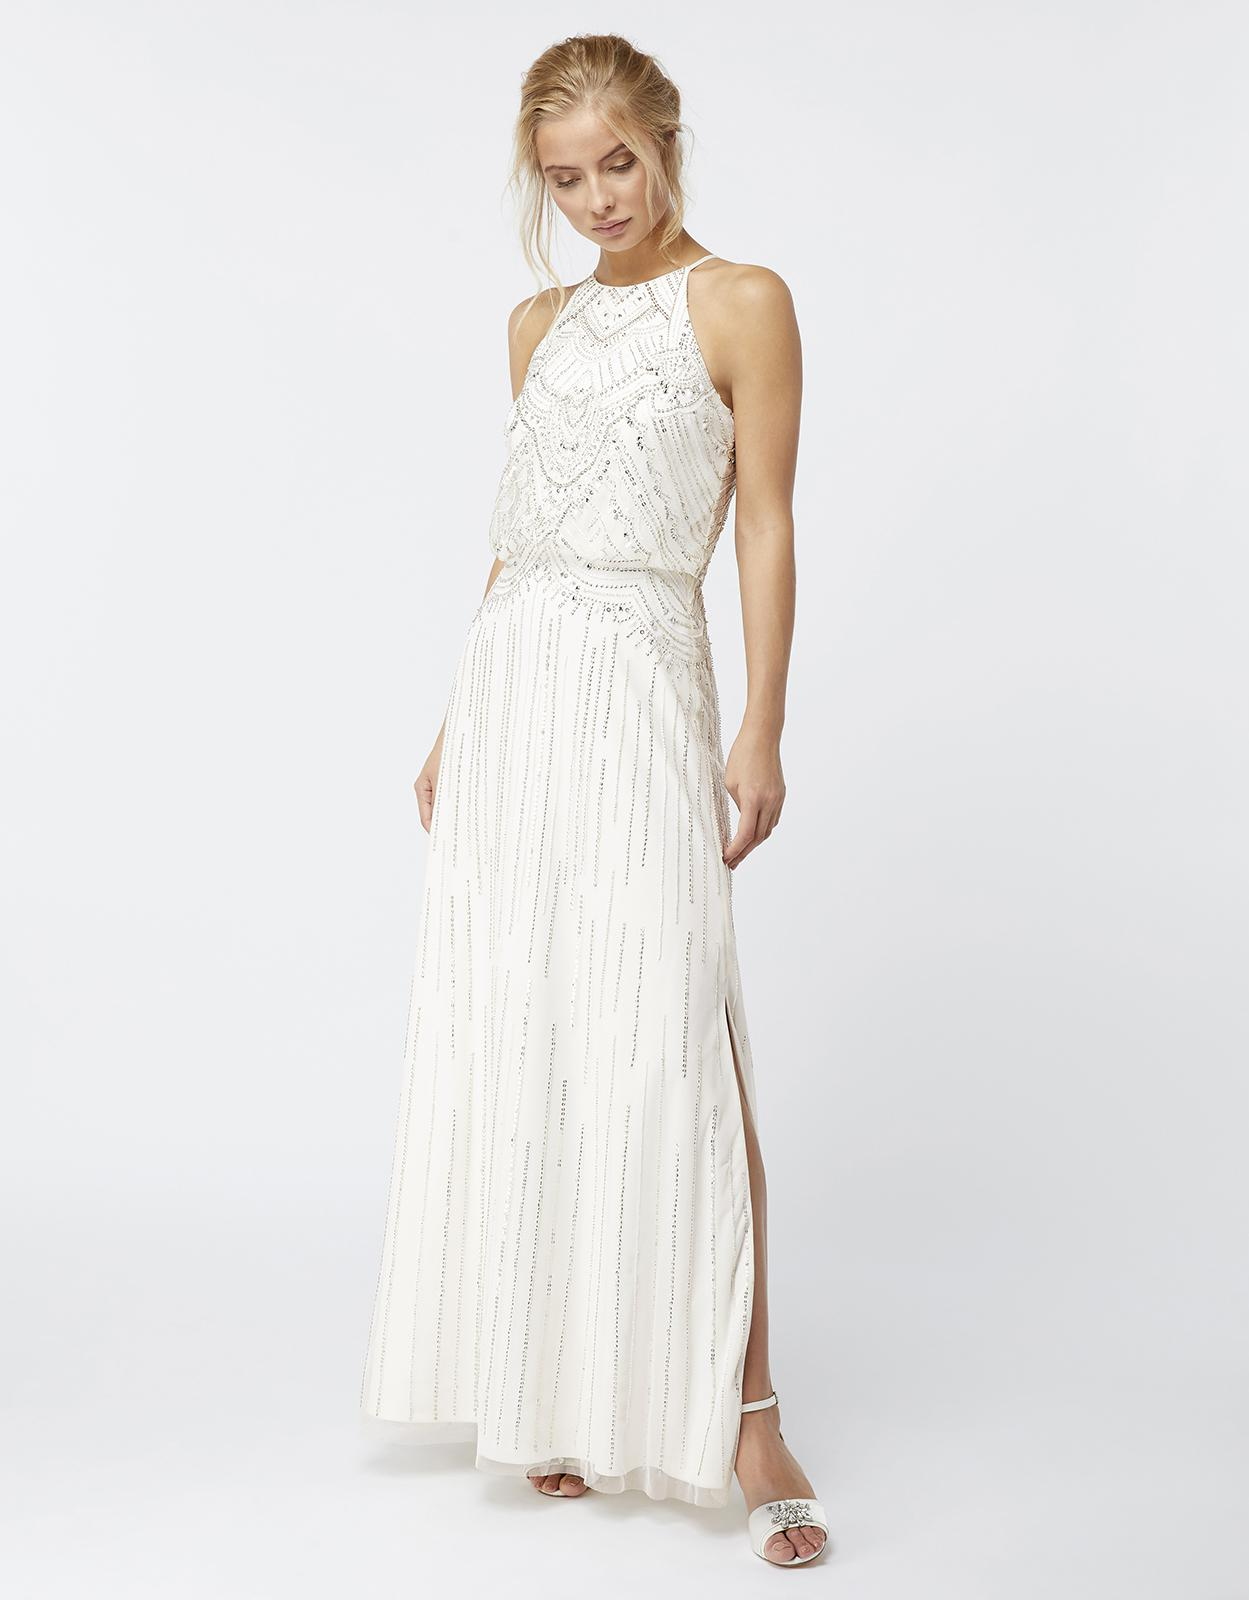 Monsoon Clara Embellished Bridal Maxi Dress in White - Lyst